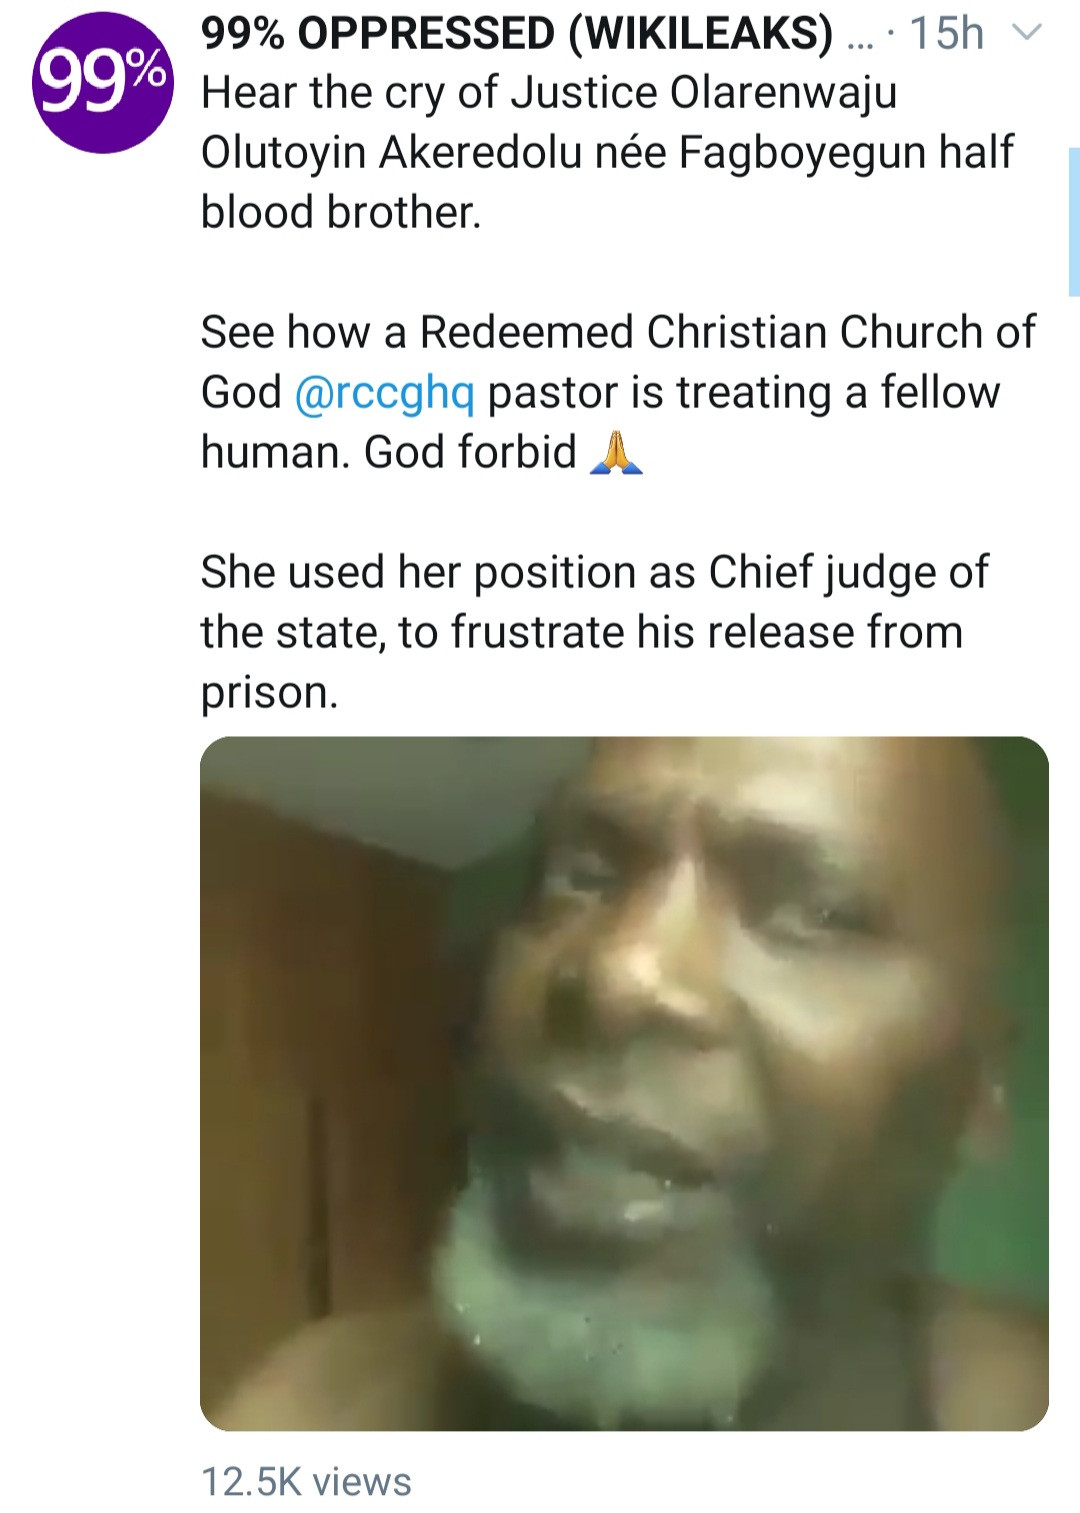 Abroad-based man cries out from Nigerian prison as he accuses his half-sister, Chief Justice of Ondo state of using her position to keep him in jail (video)